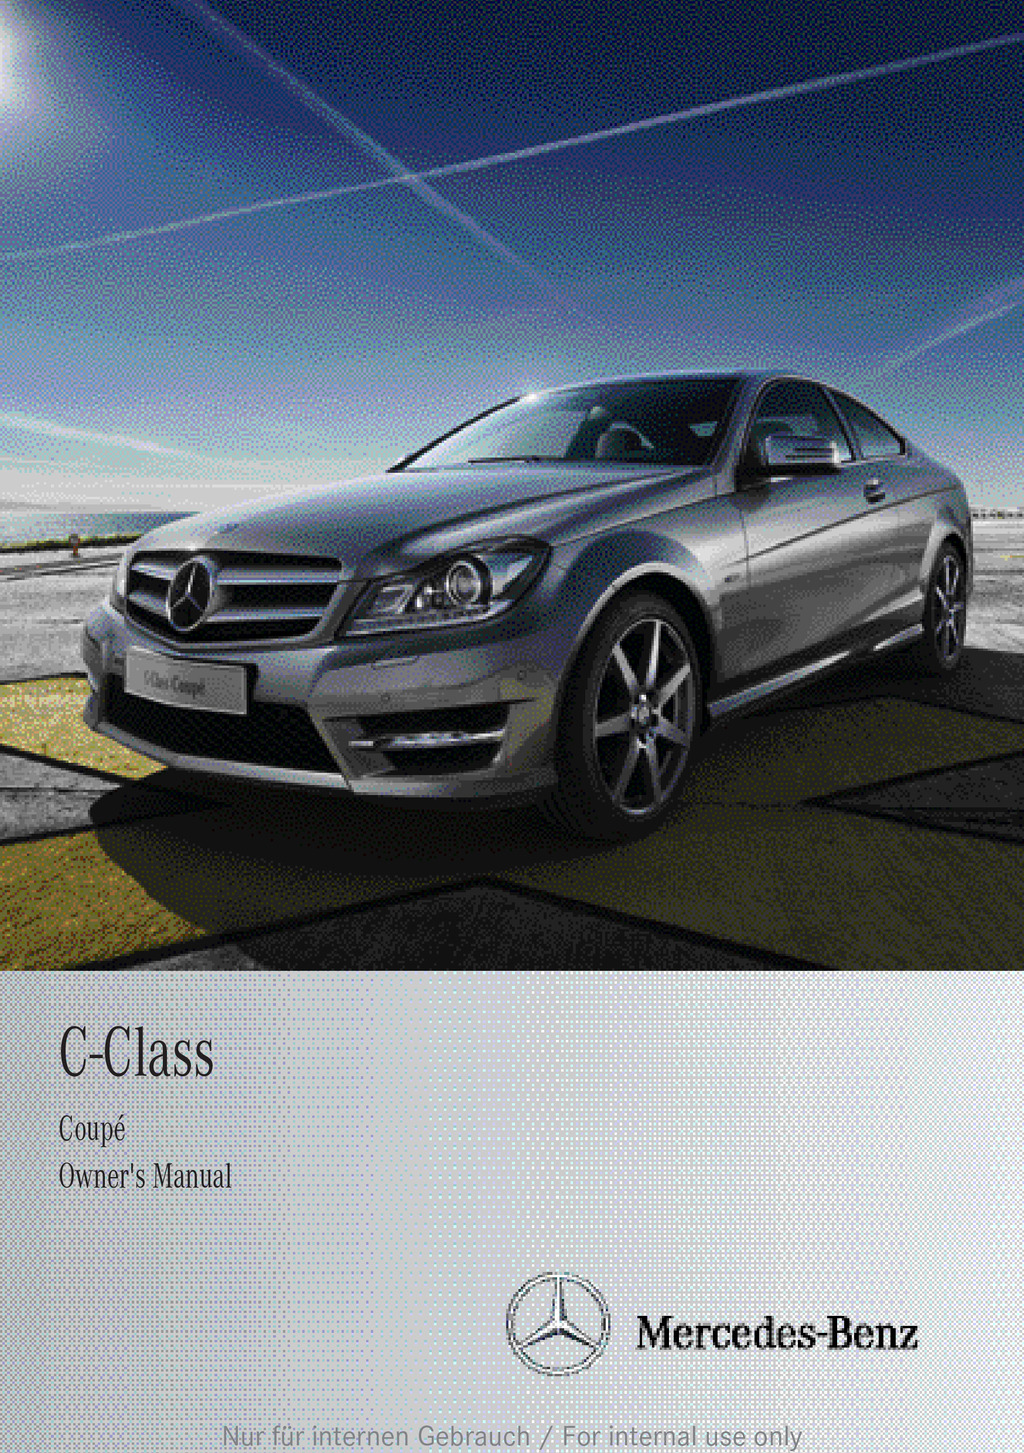 2013 Mercedes-Benz C Class Coupe owners manual